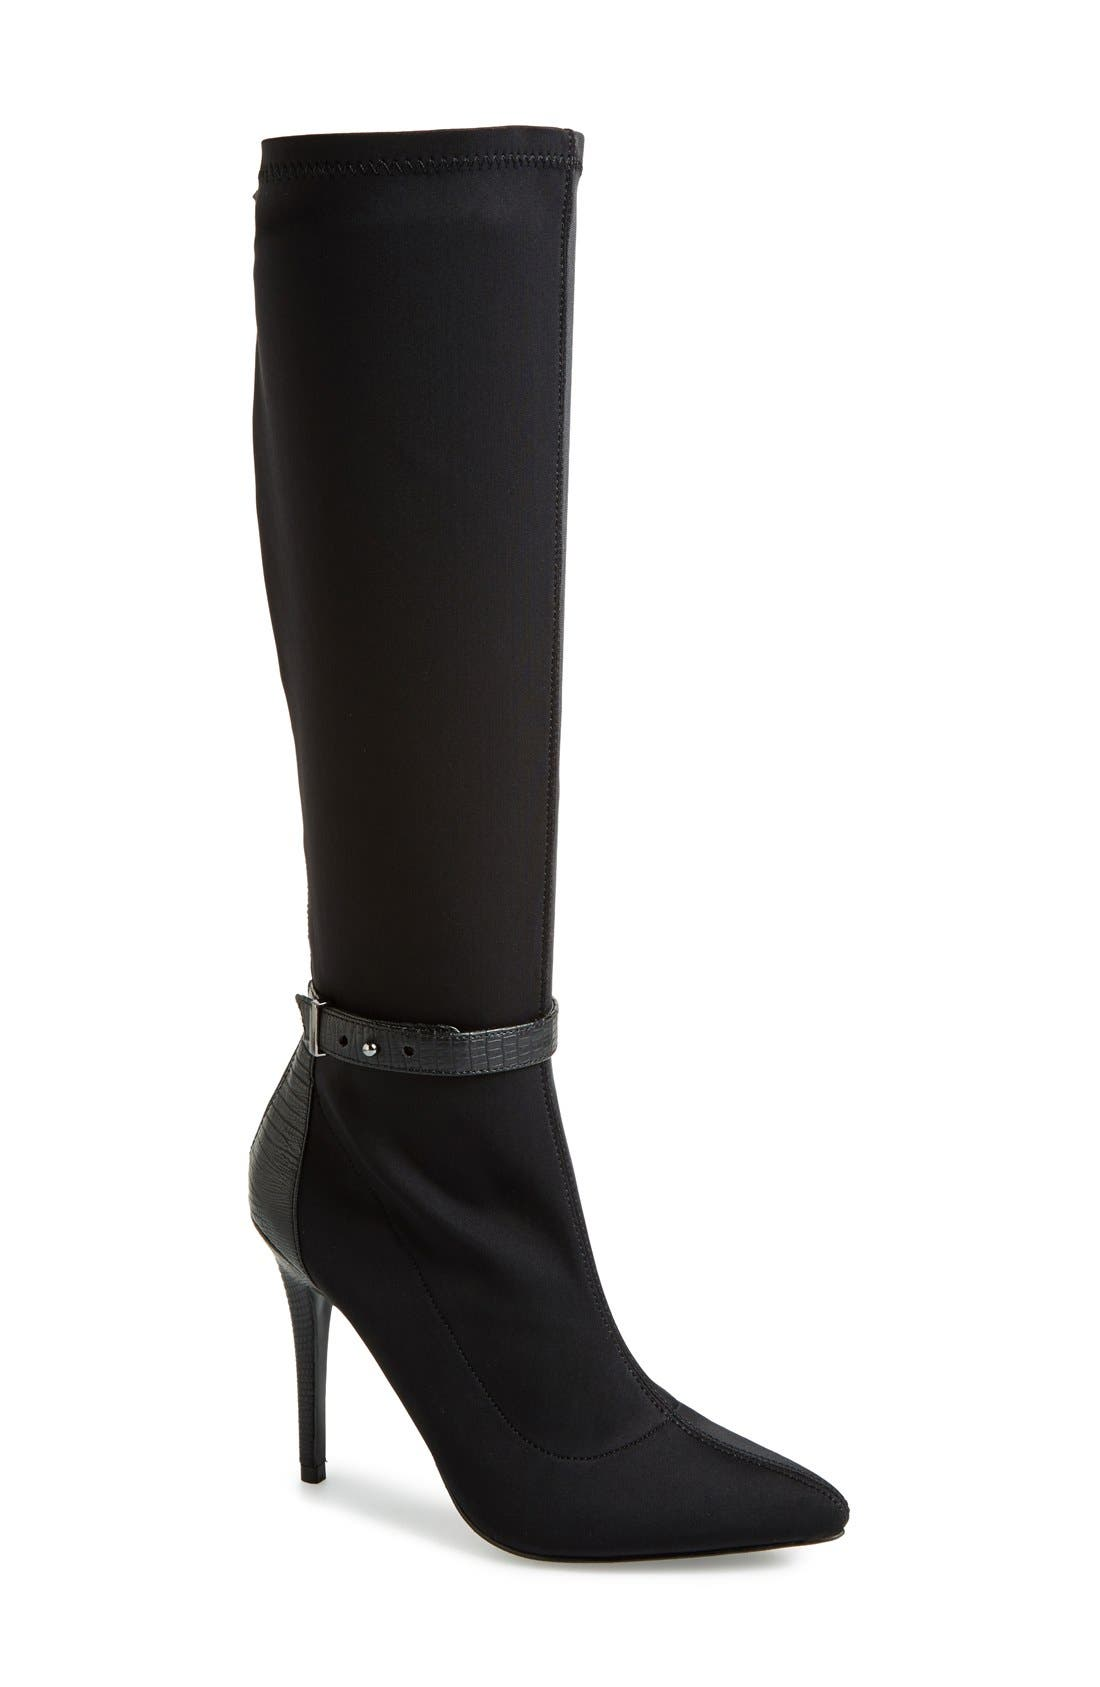 Alternate Image 1 Selected - Charles by Charles David 'Paola' Tall Boot (Women)